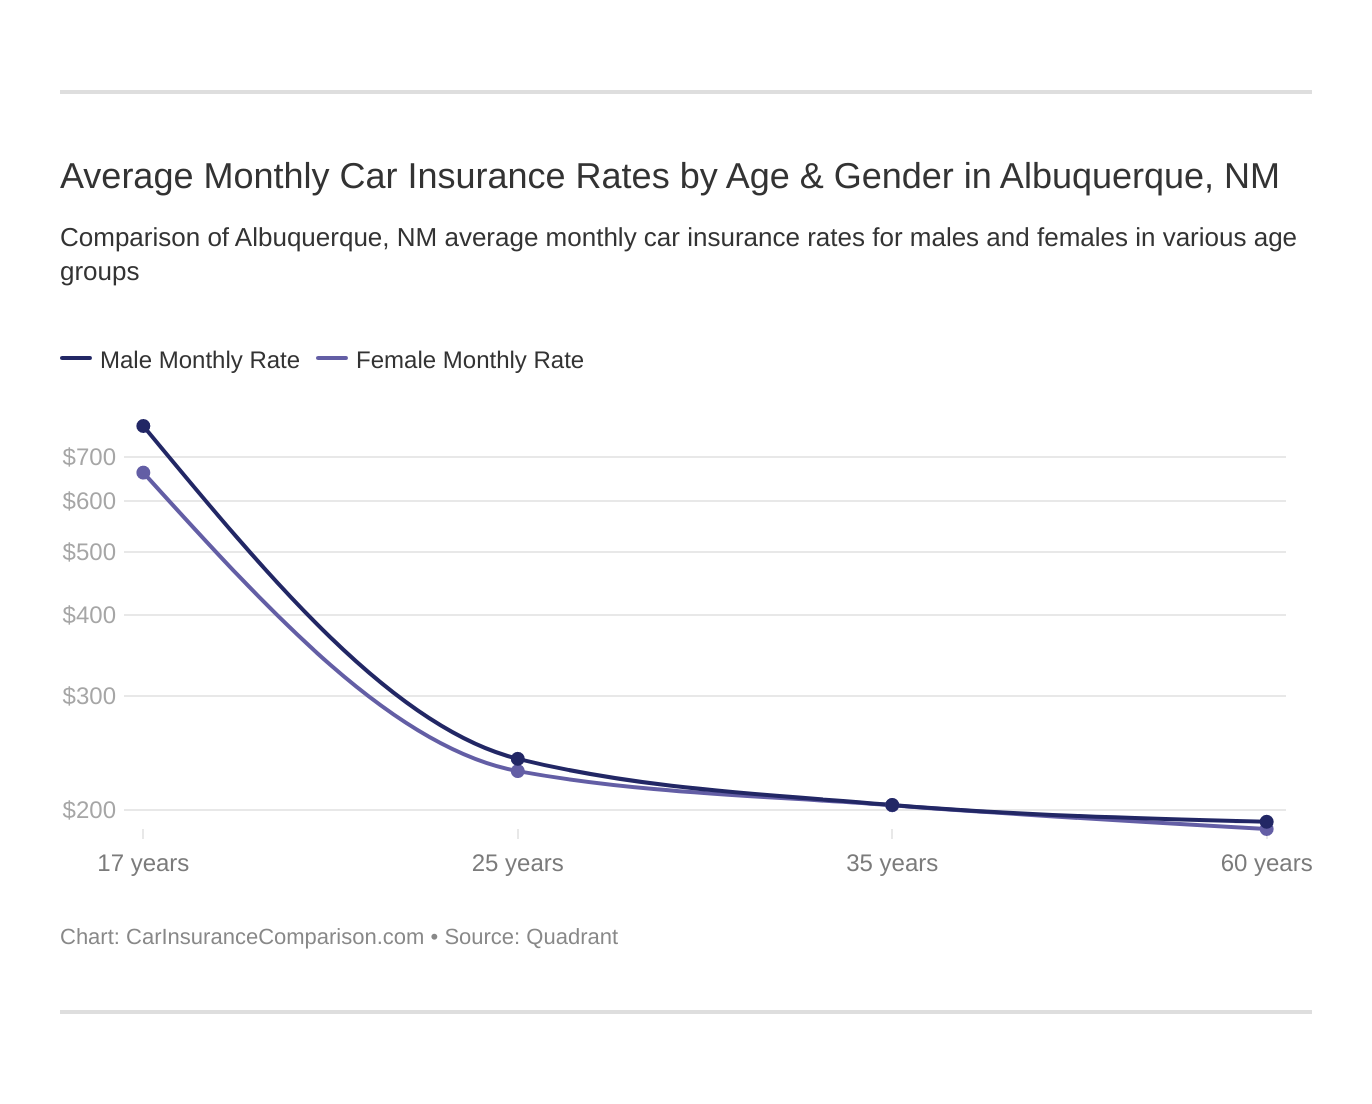 Average Monthly Car Insurance Rates by Age & Gender in Albuquerque, NM